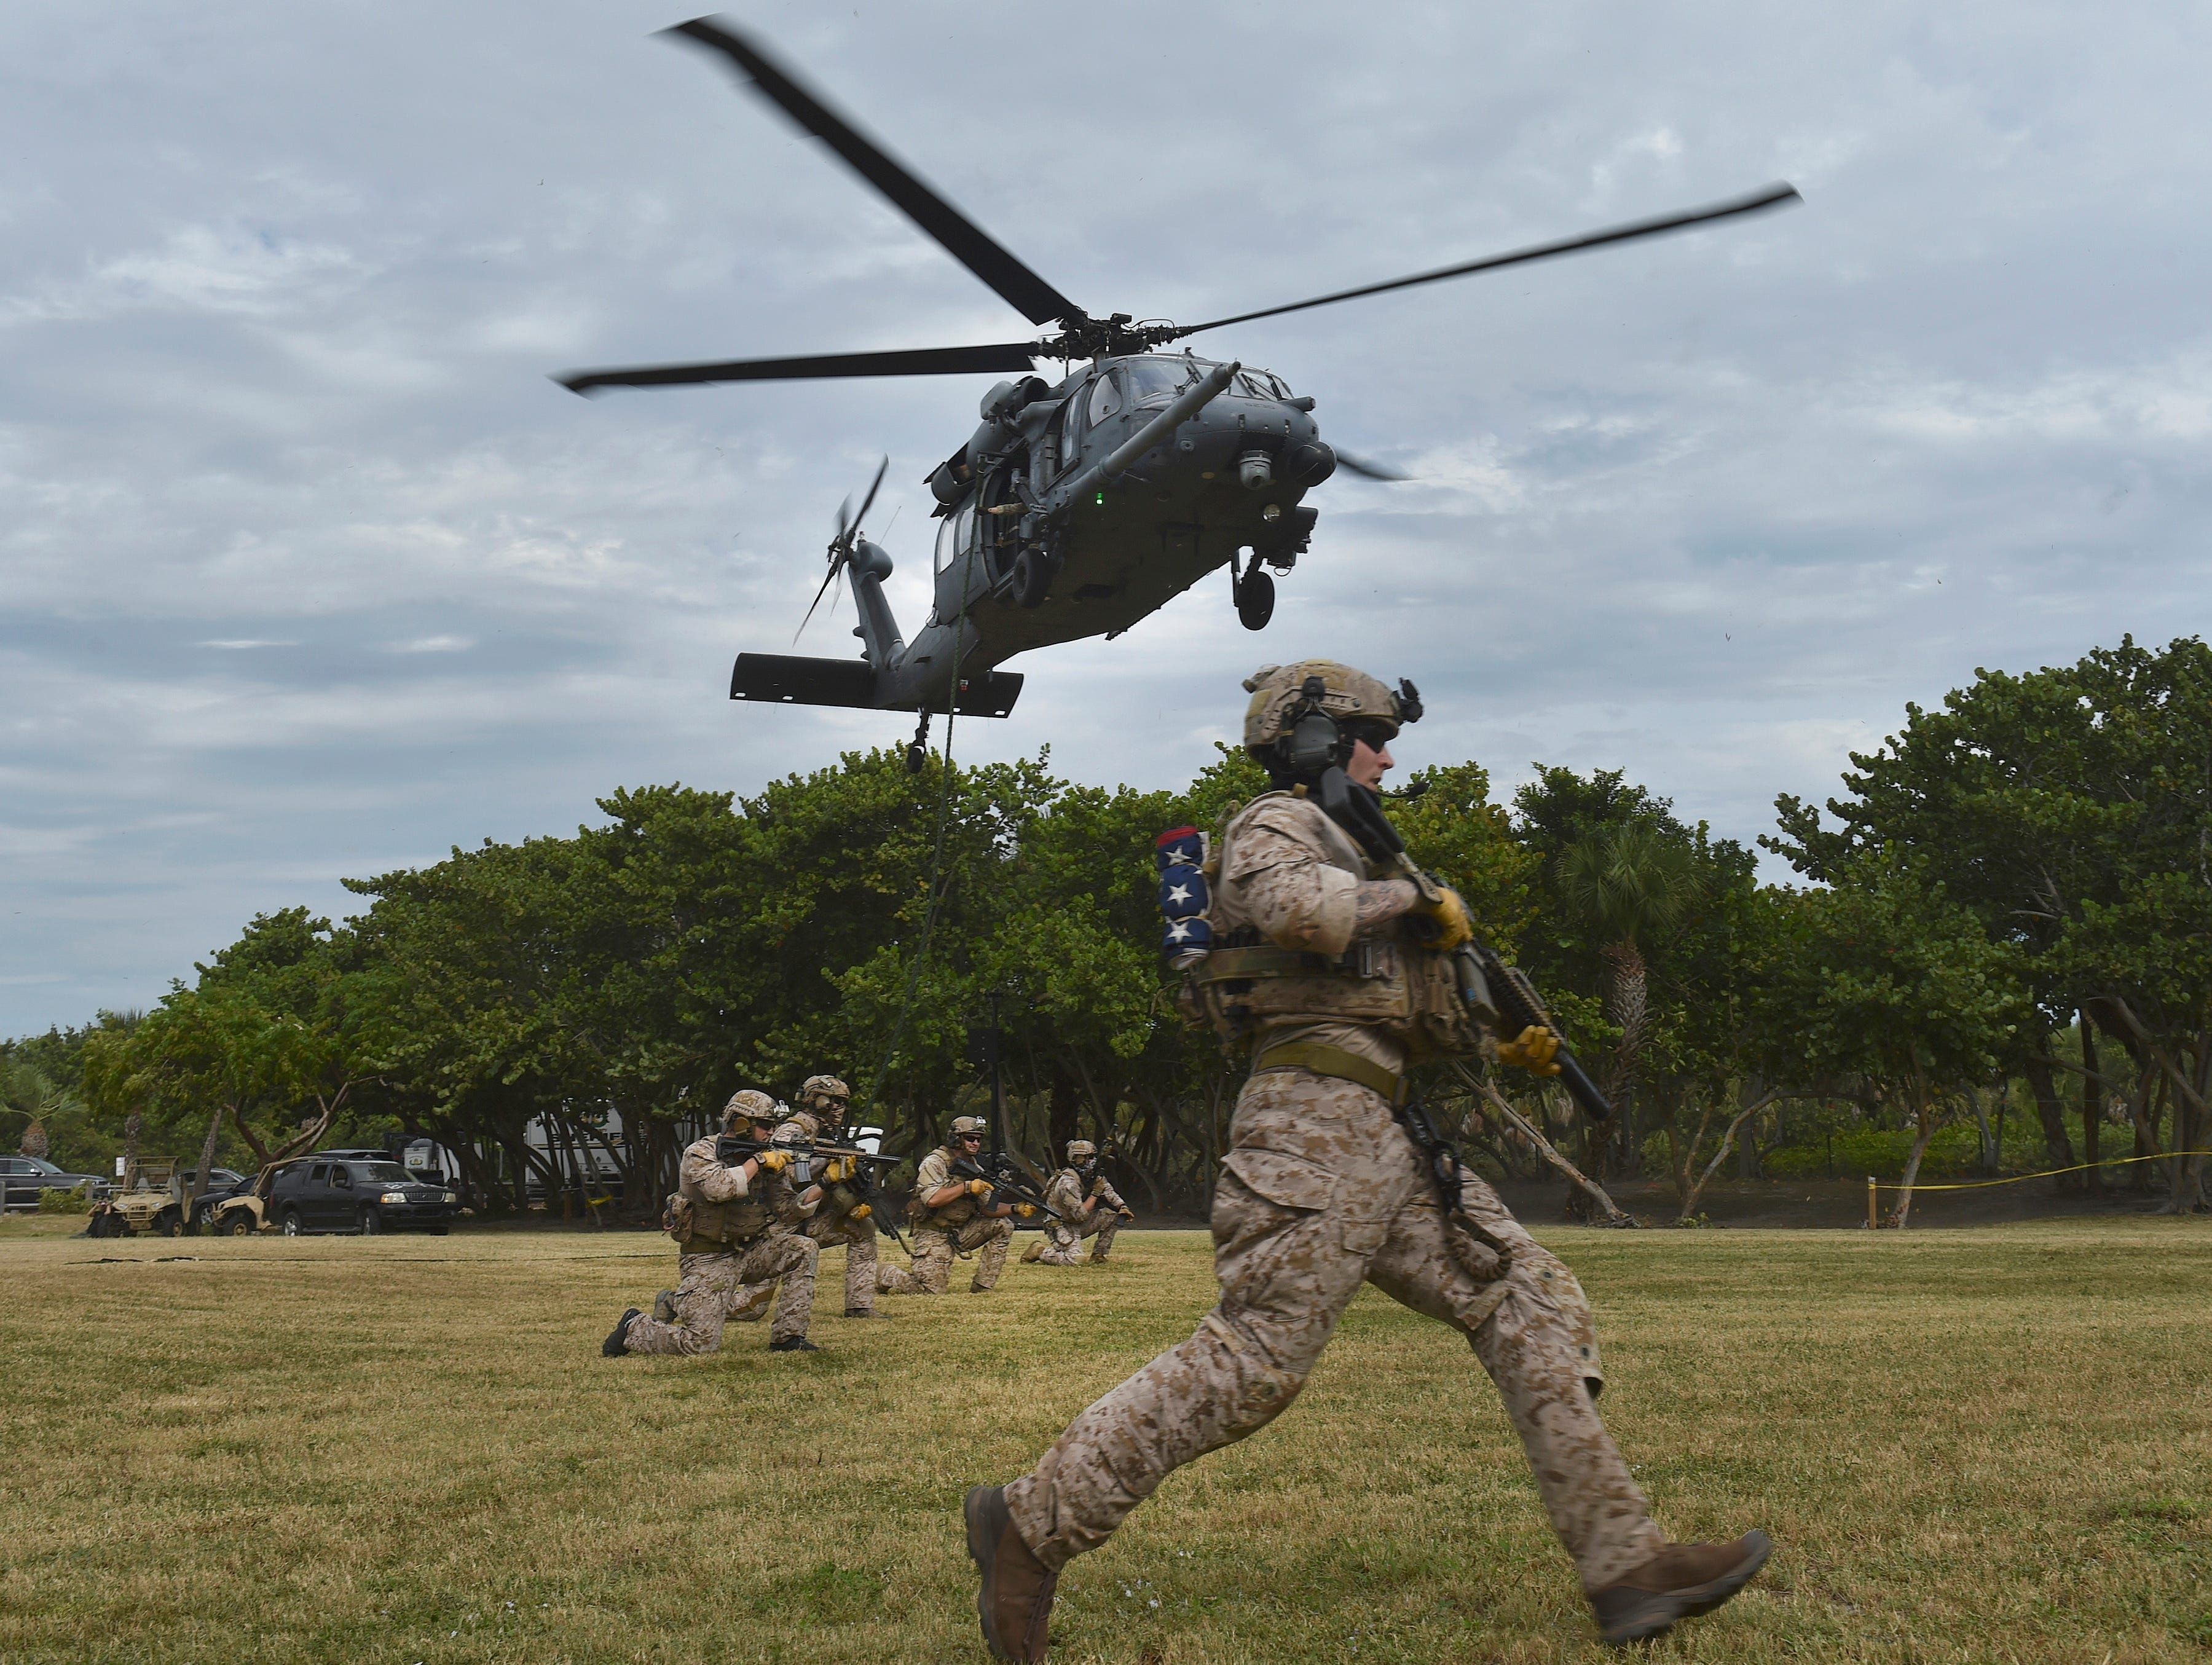 U.S. Navy SEALs stage onto the grounds of Pepper Park Beachside after rappelling from a Sikorsky HH-60 Pave Hawk Helicopter during practice for their SEAL tactical demonstration Friday, Nov. 2, 2018, in preparation for the National Navy UDT-SEAL Museum's 33rd annual Muster and Music Festival Saturday, Nov. 3, in Fort Pierce.